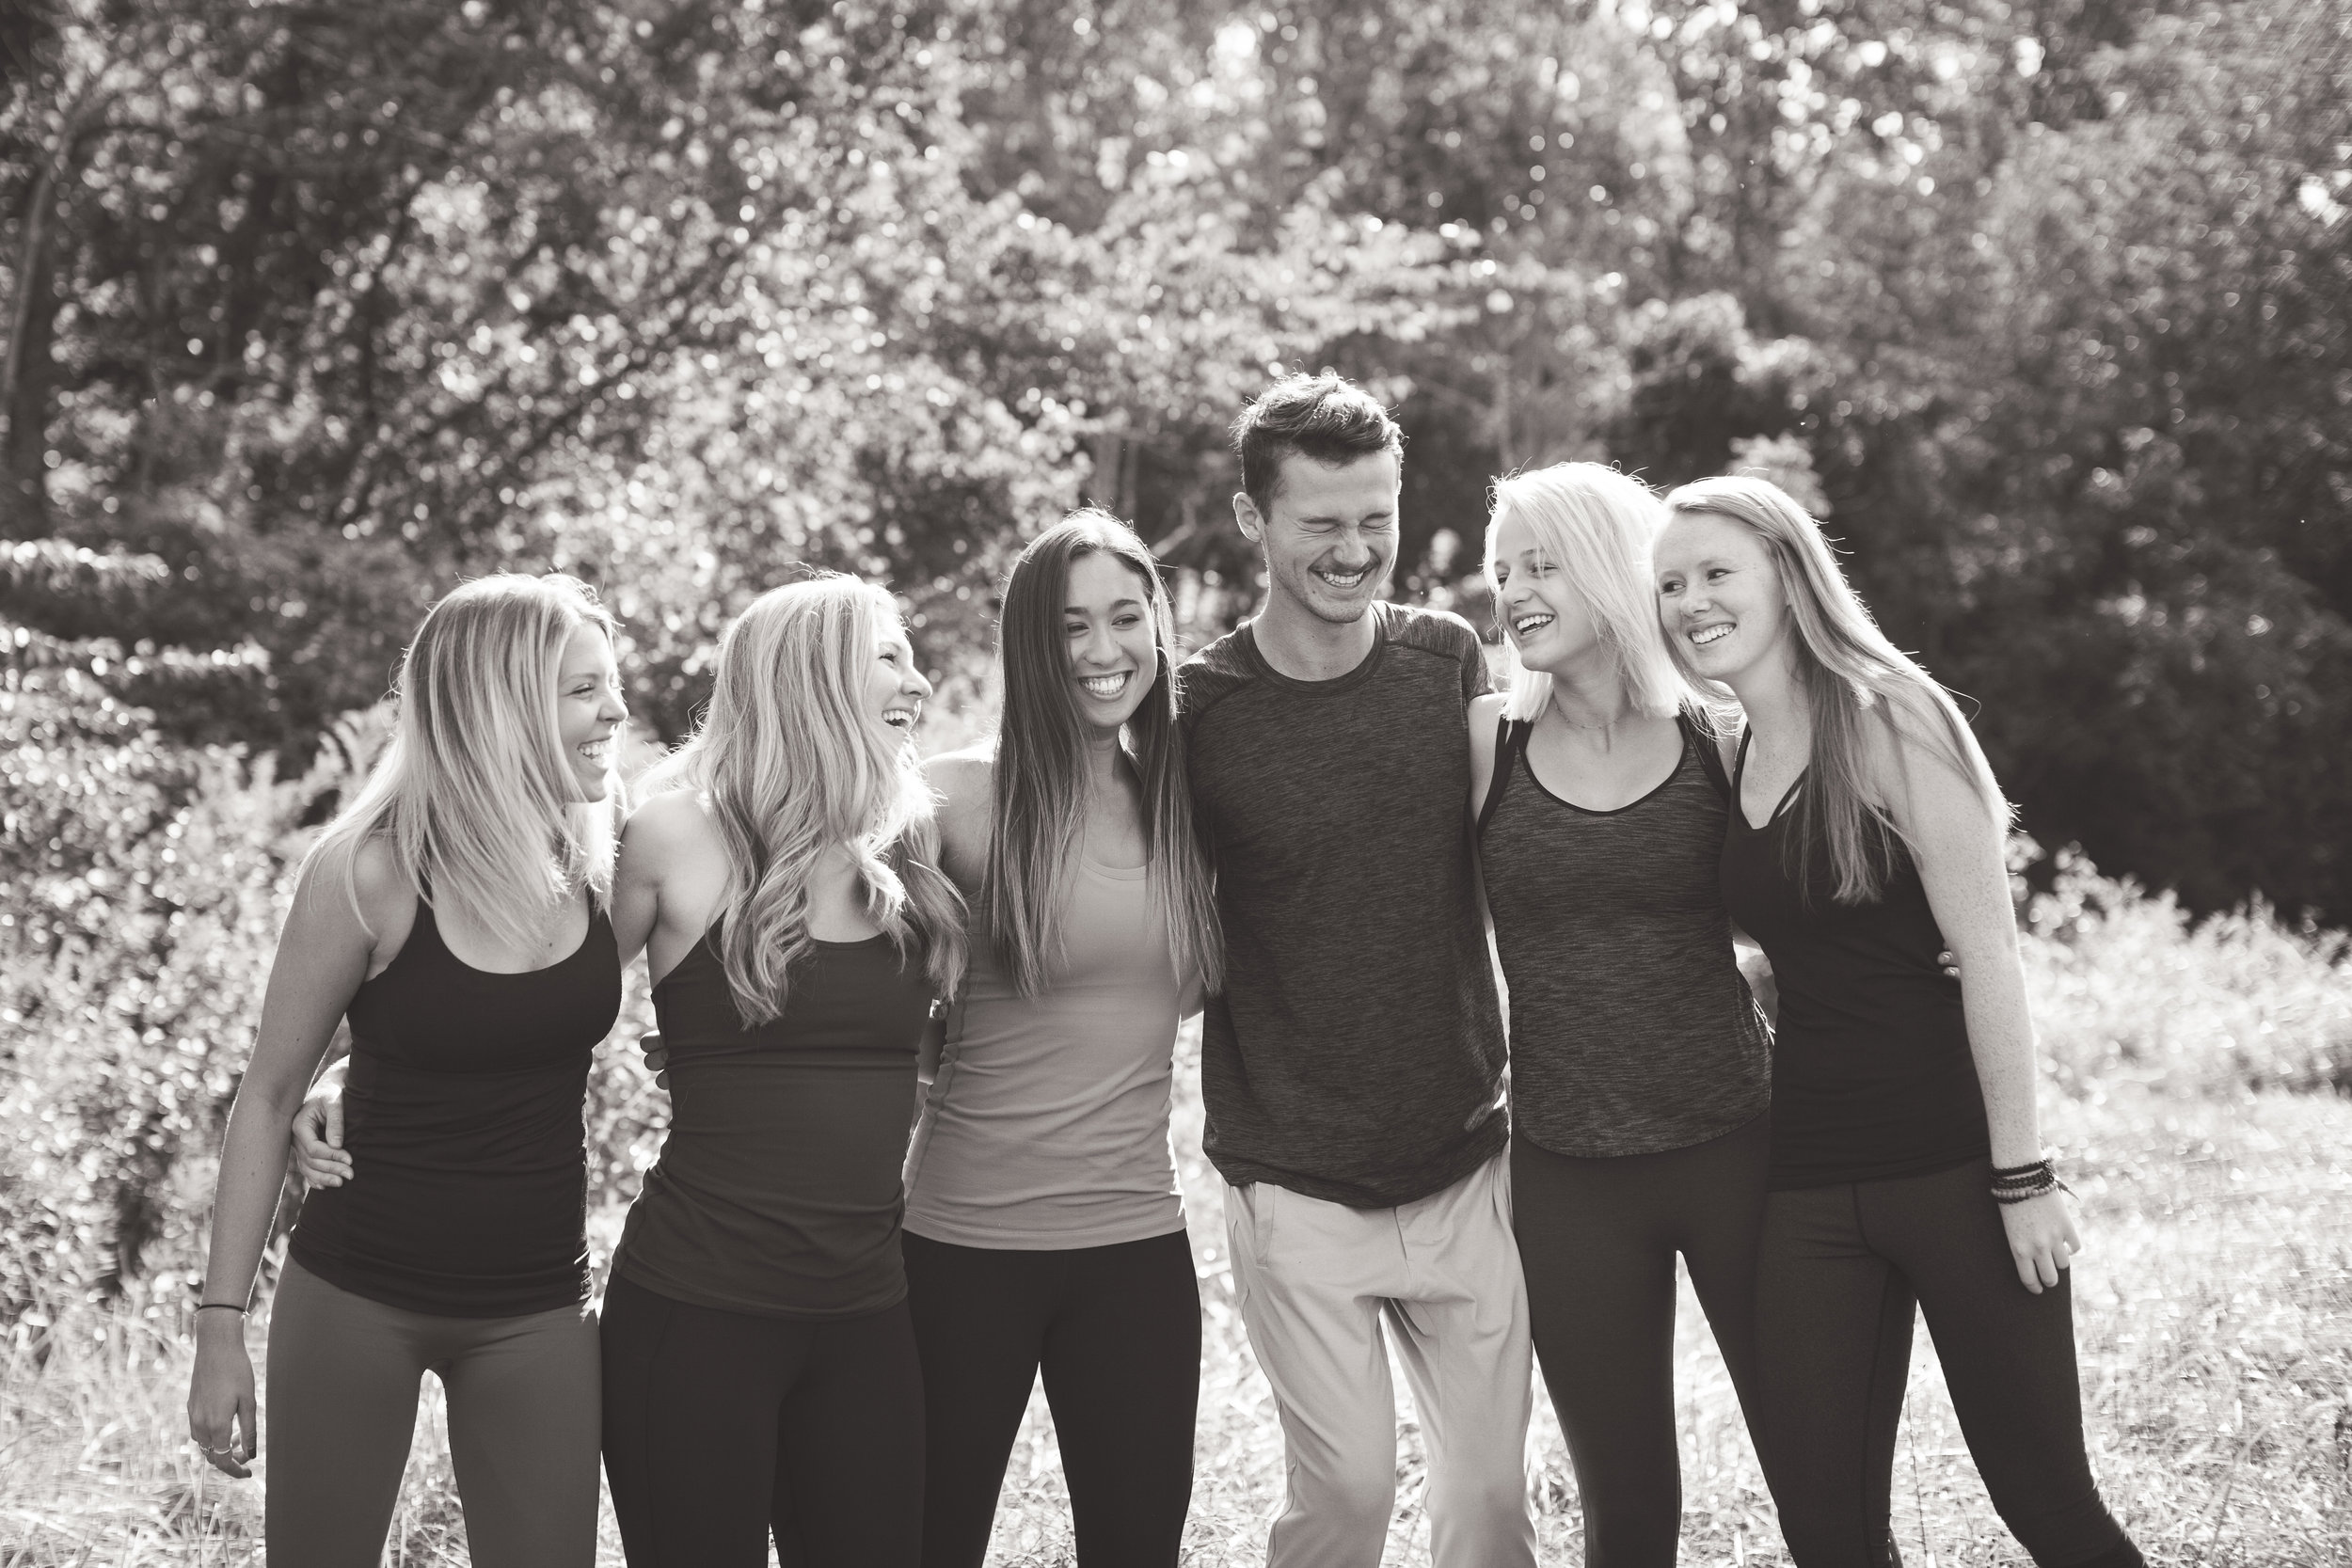 Left to Right: Paige, Libby, Sophie, Nicholas, Haezal, and Kacey